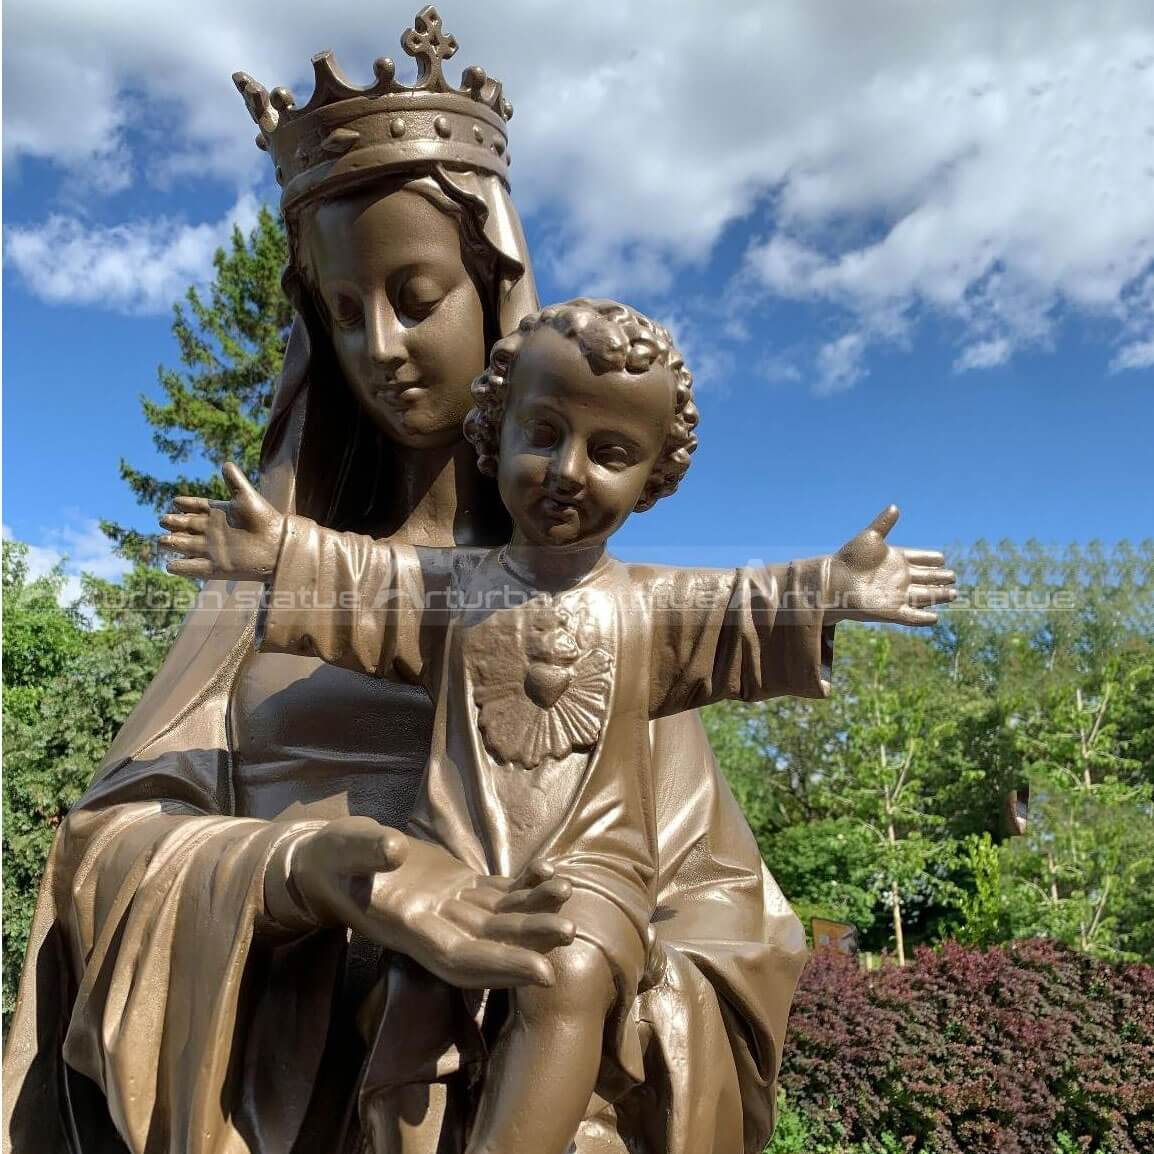 Sculpture of mary holding jesus